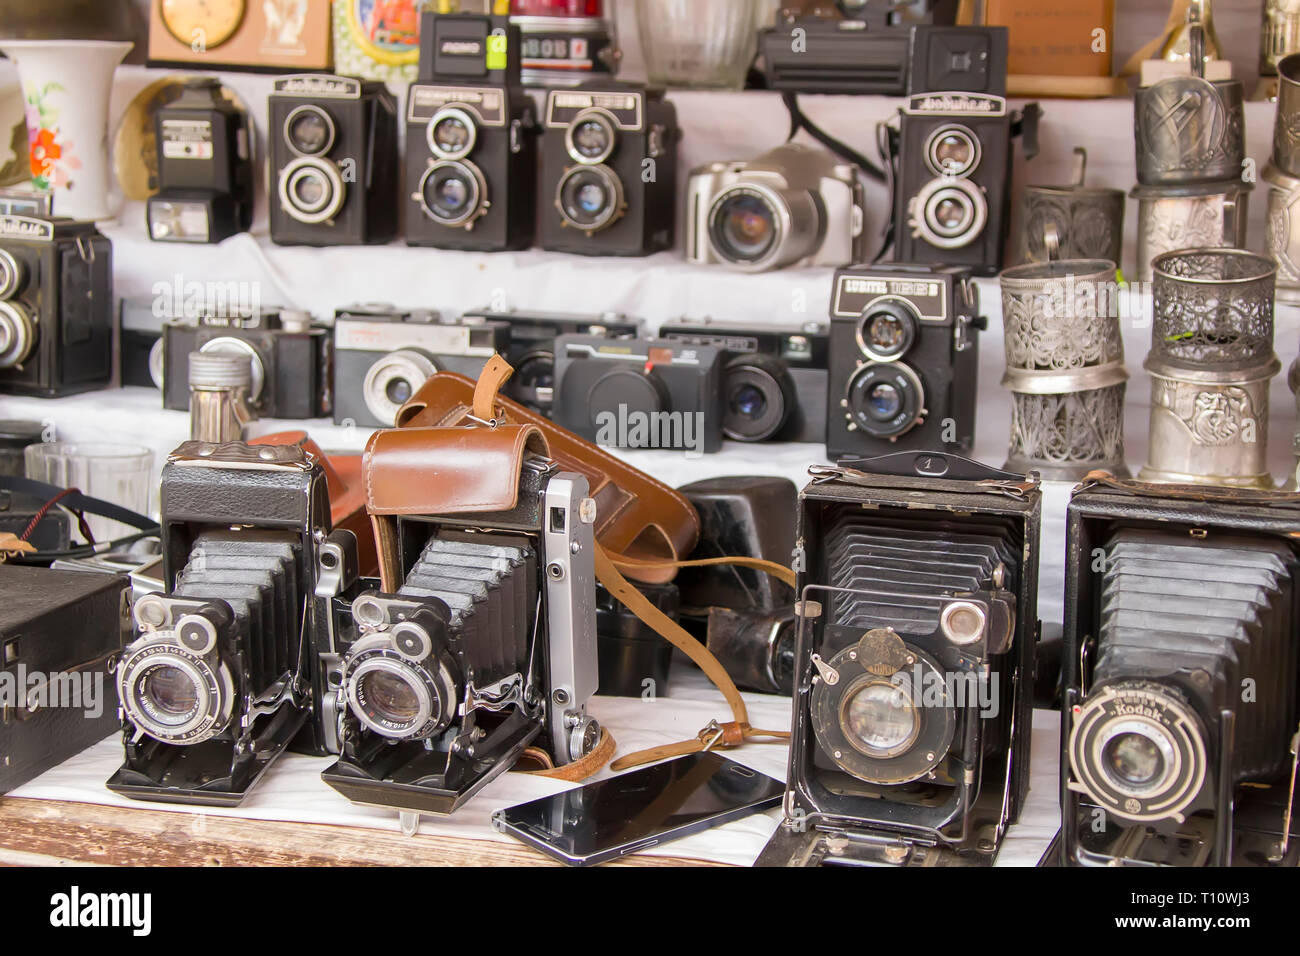 Moscow, June 08, 2018. Central market.Vintage cameras. Ancient photographic equipment Stock Photo